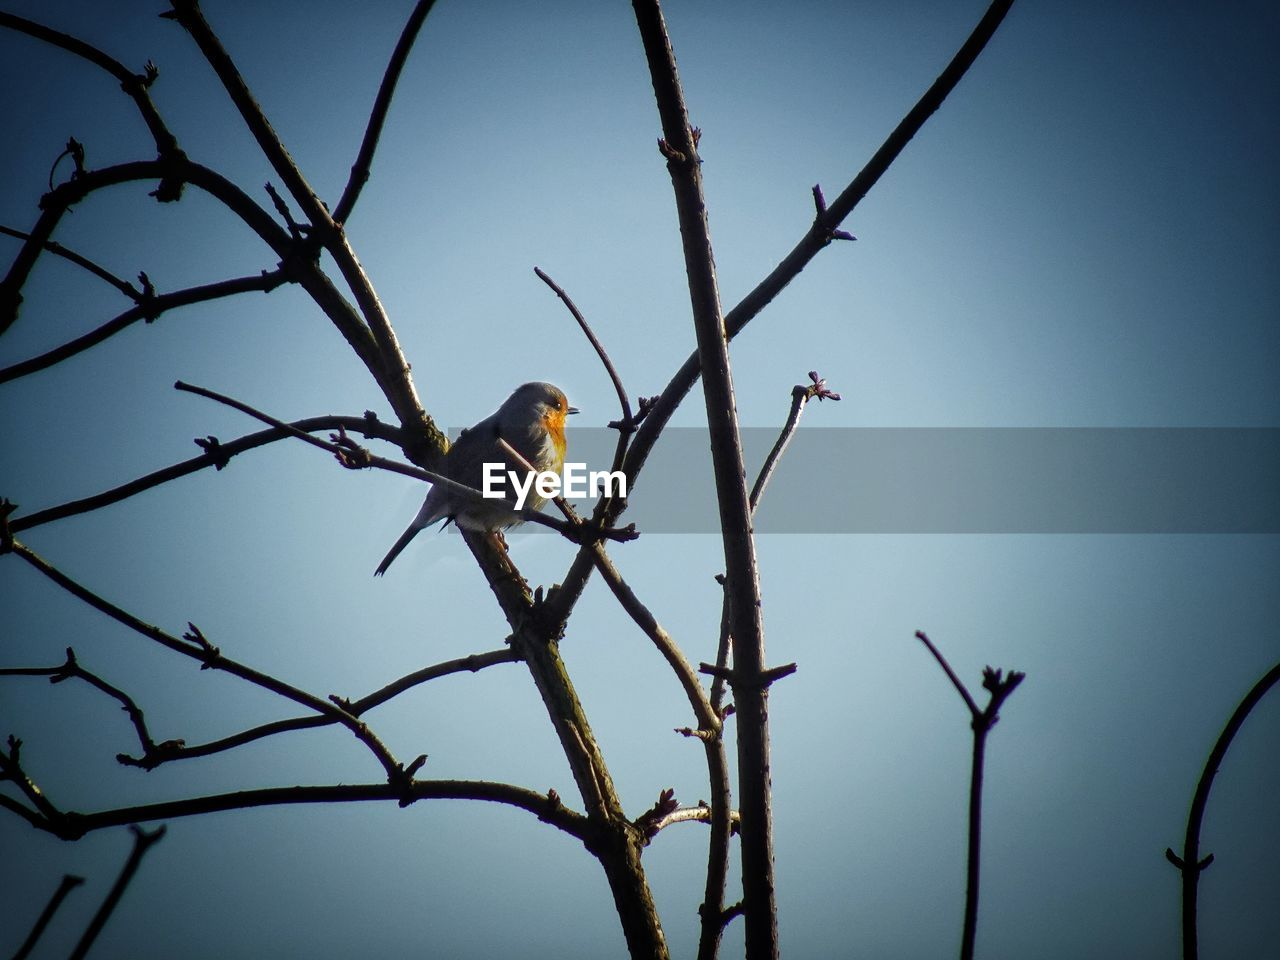 animals in the wild, bird, animal wildlife, vertebrate, animal, animal themes, one animal, tree, sky, branch, low angle view, perching, clear sky, plant, no people, nature, day, outdoors, bare tree, yellow